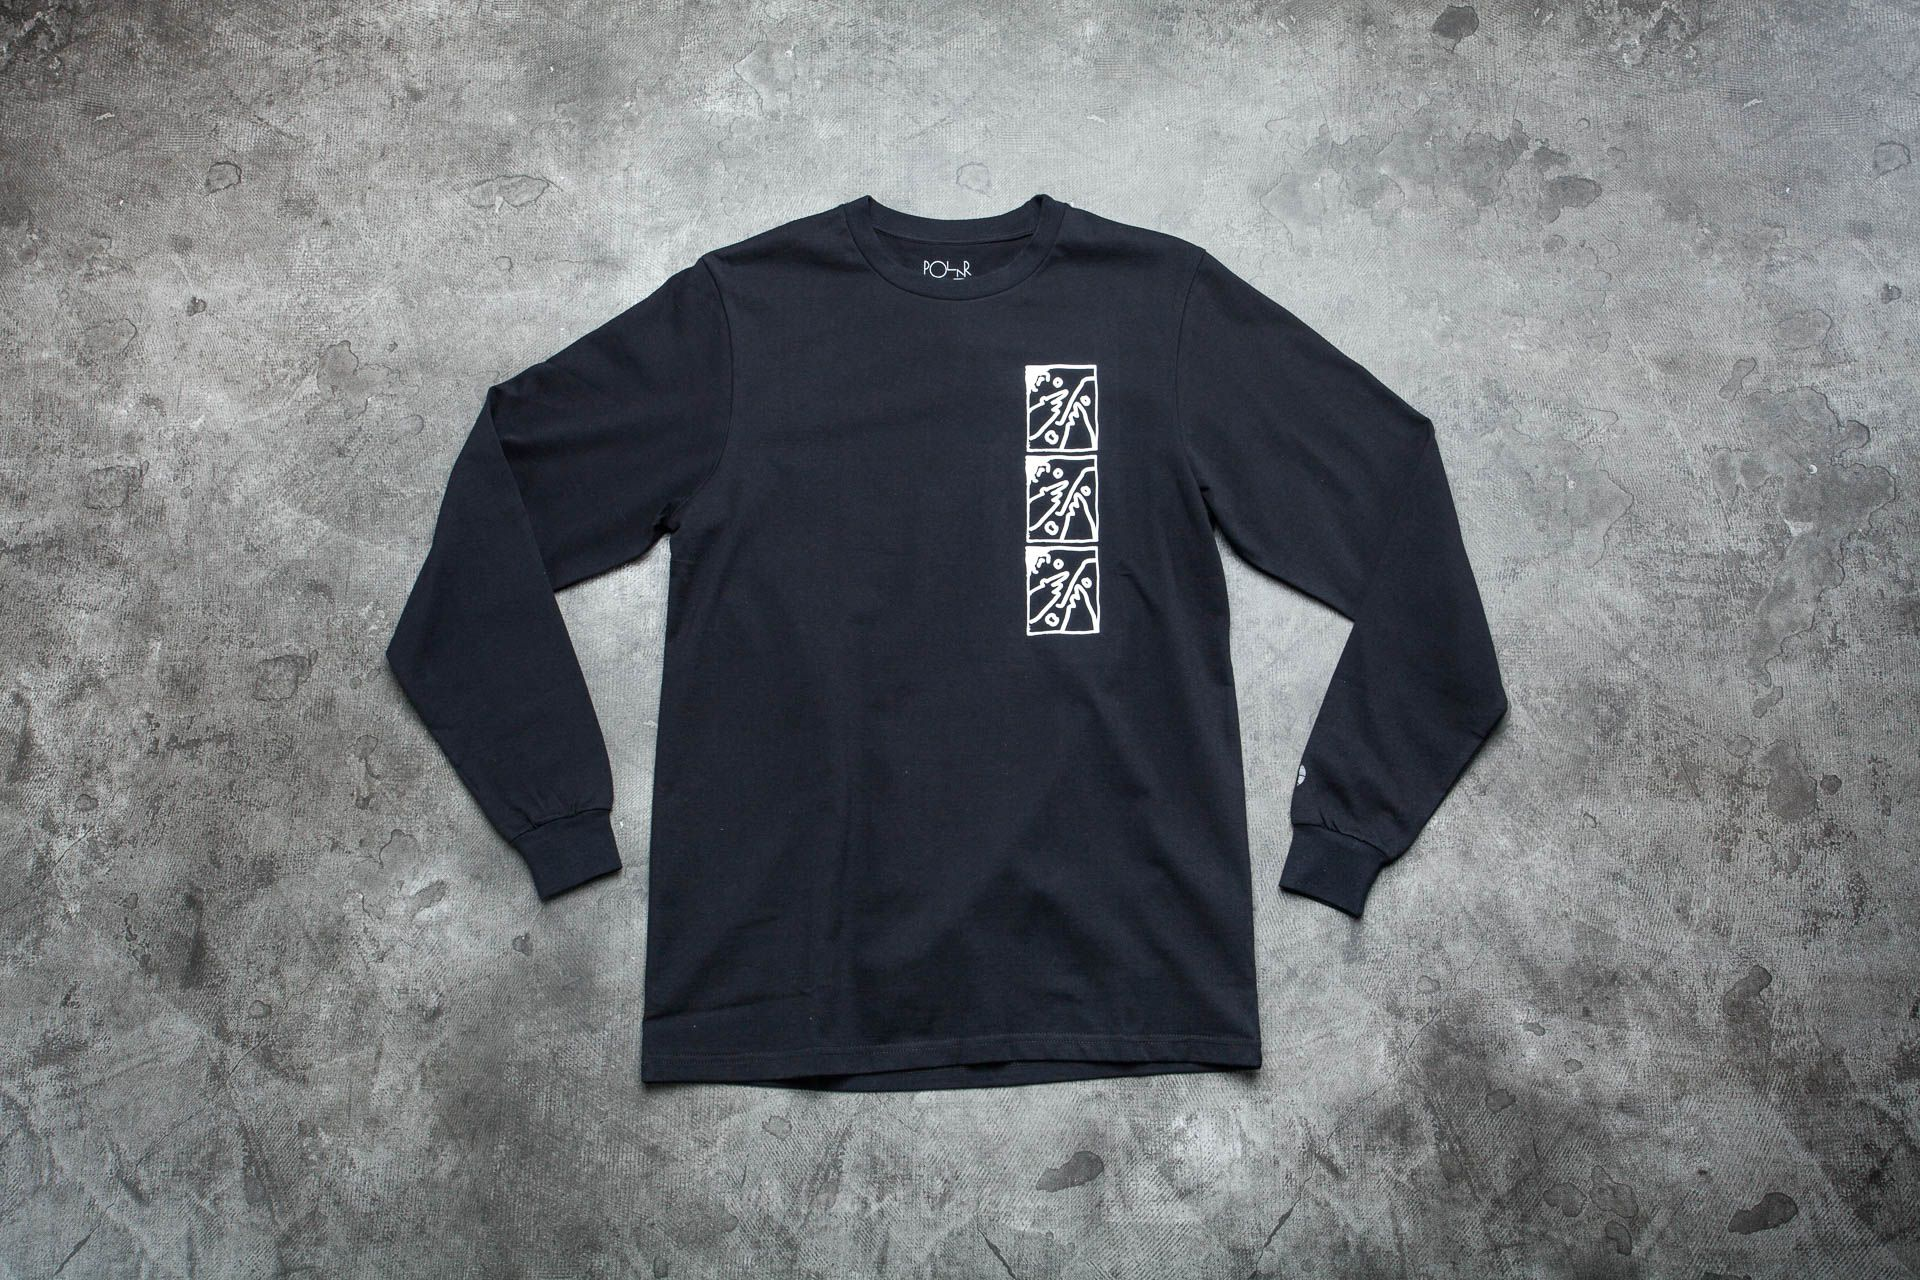 Polar Skate co. Three Faces Long Sleeve Tee Black